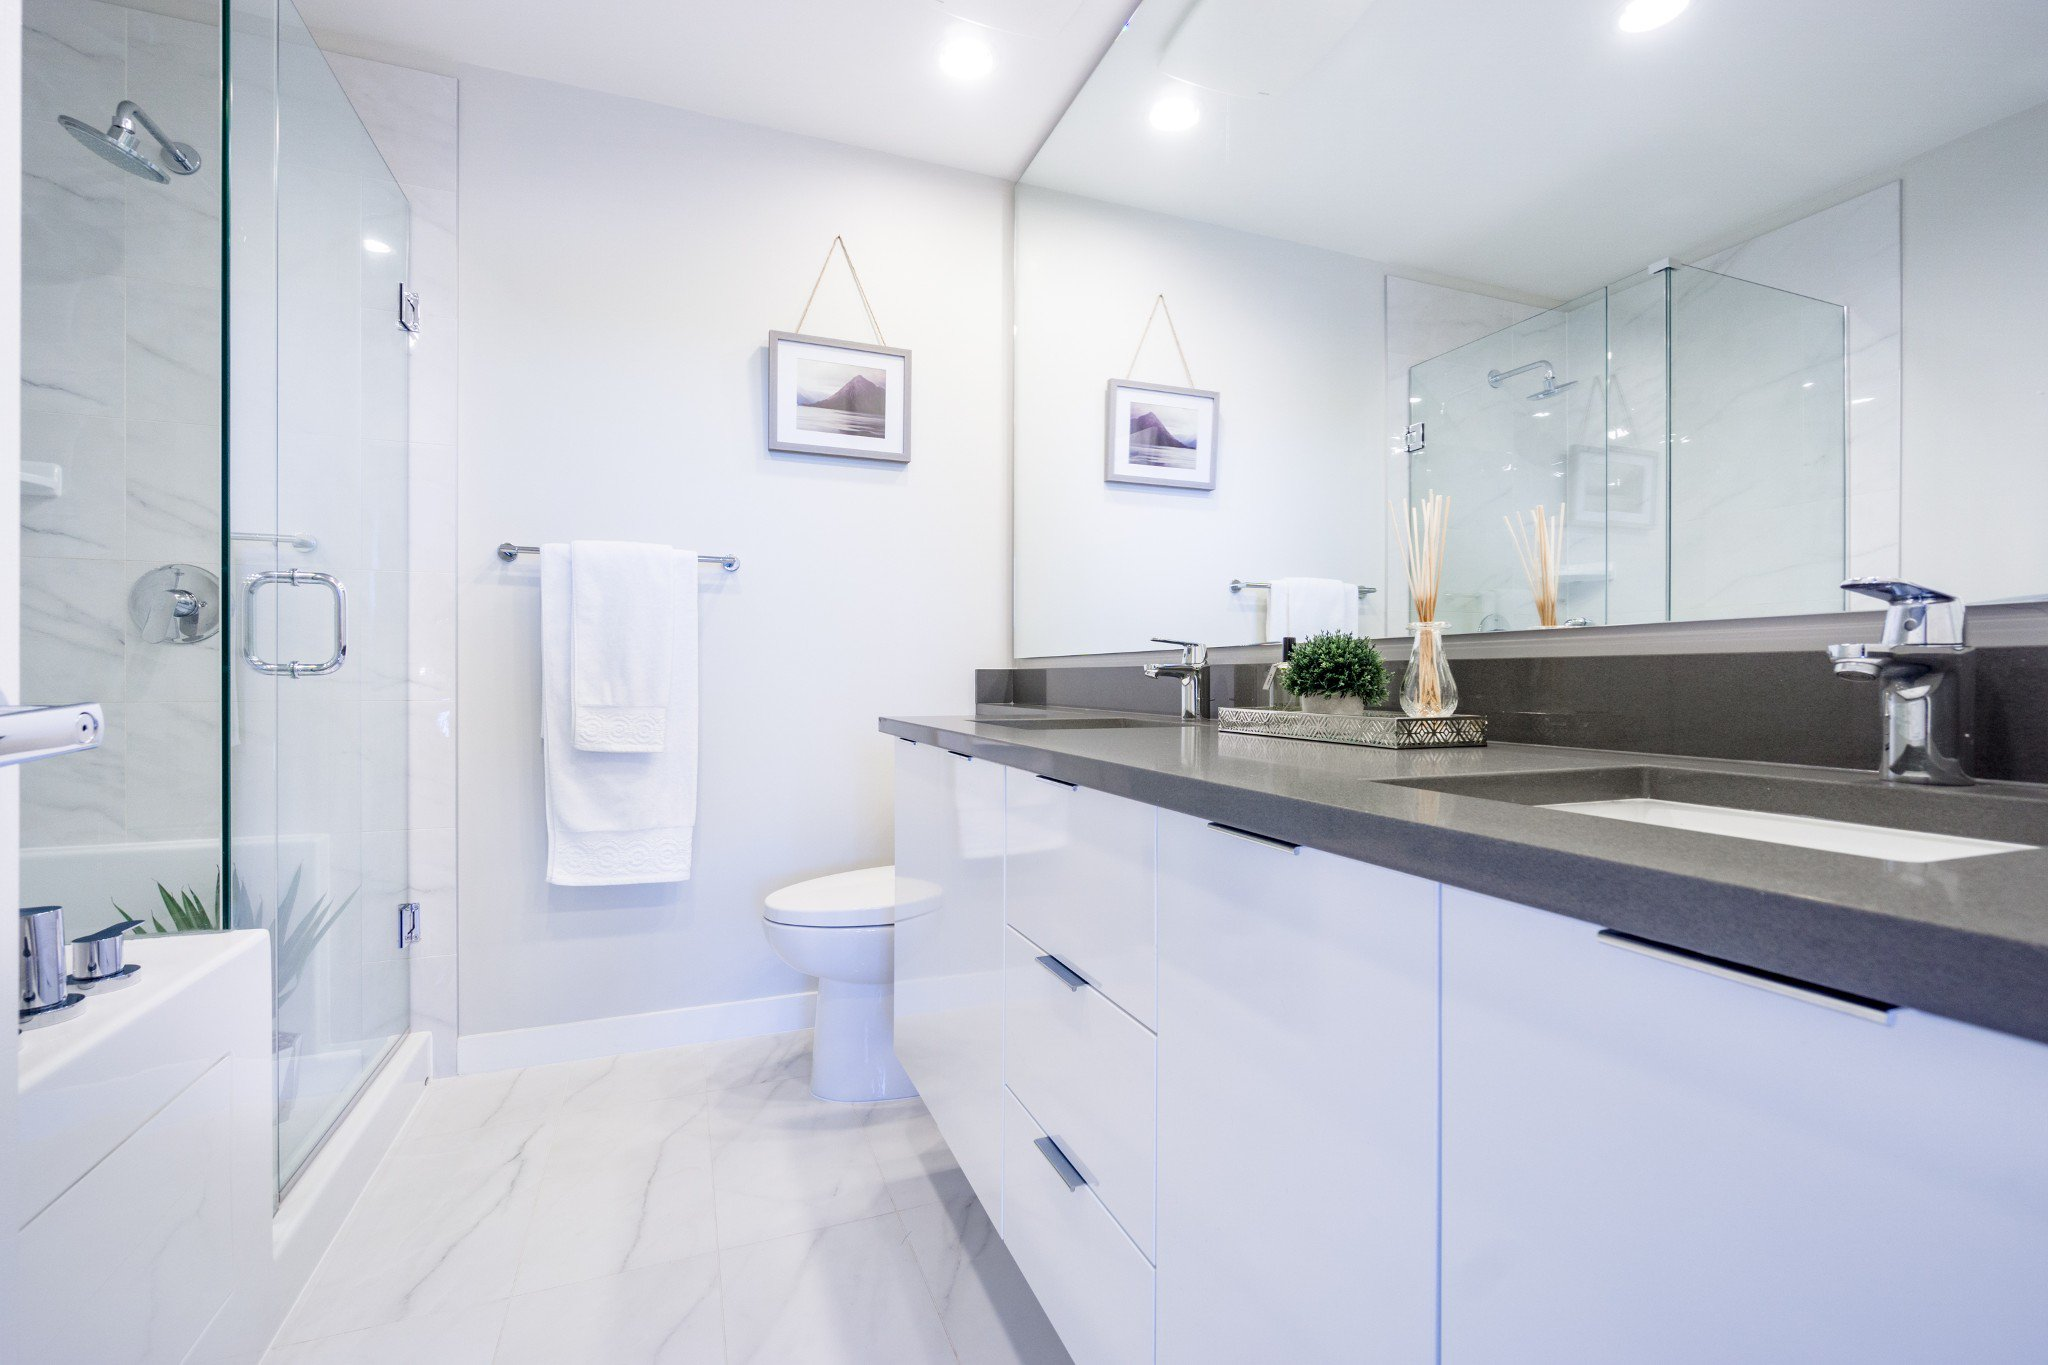 """Photo 27: Photos: 402 9311 ALEXANDRA Road in Richmond: West Cambie Condo for sale in """"ALEXANDRA COURT"""" : MLS®# R2266613"""